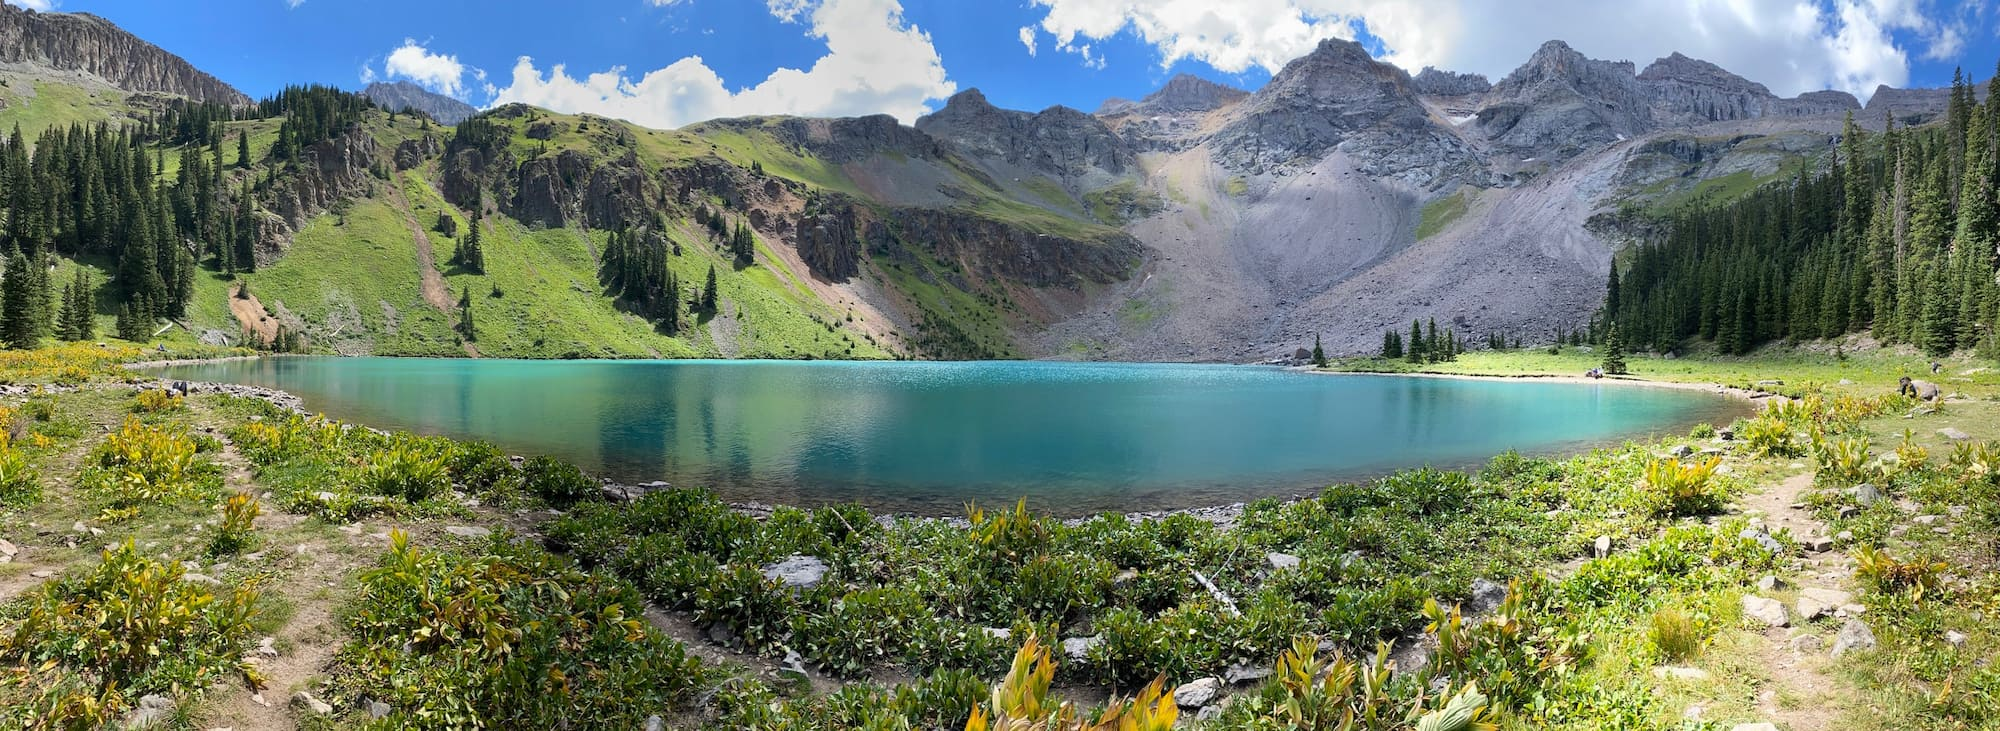 Turquoise alpine lake surrounded by a large mountain.